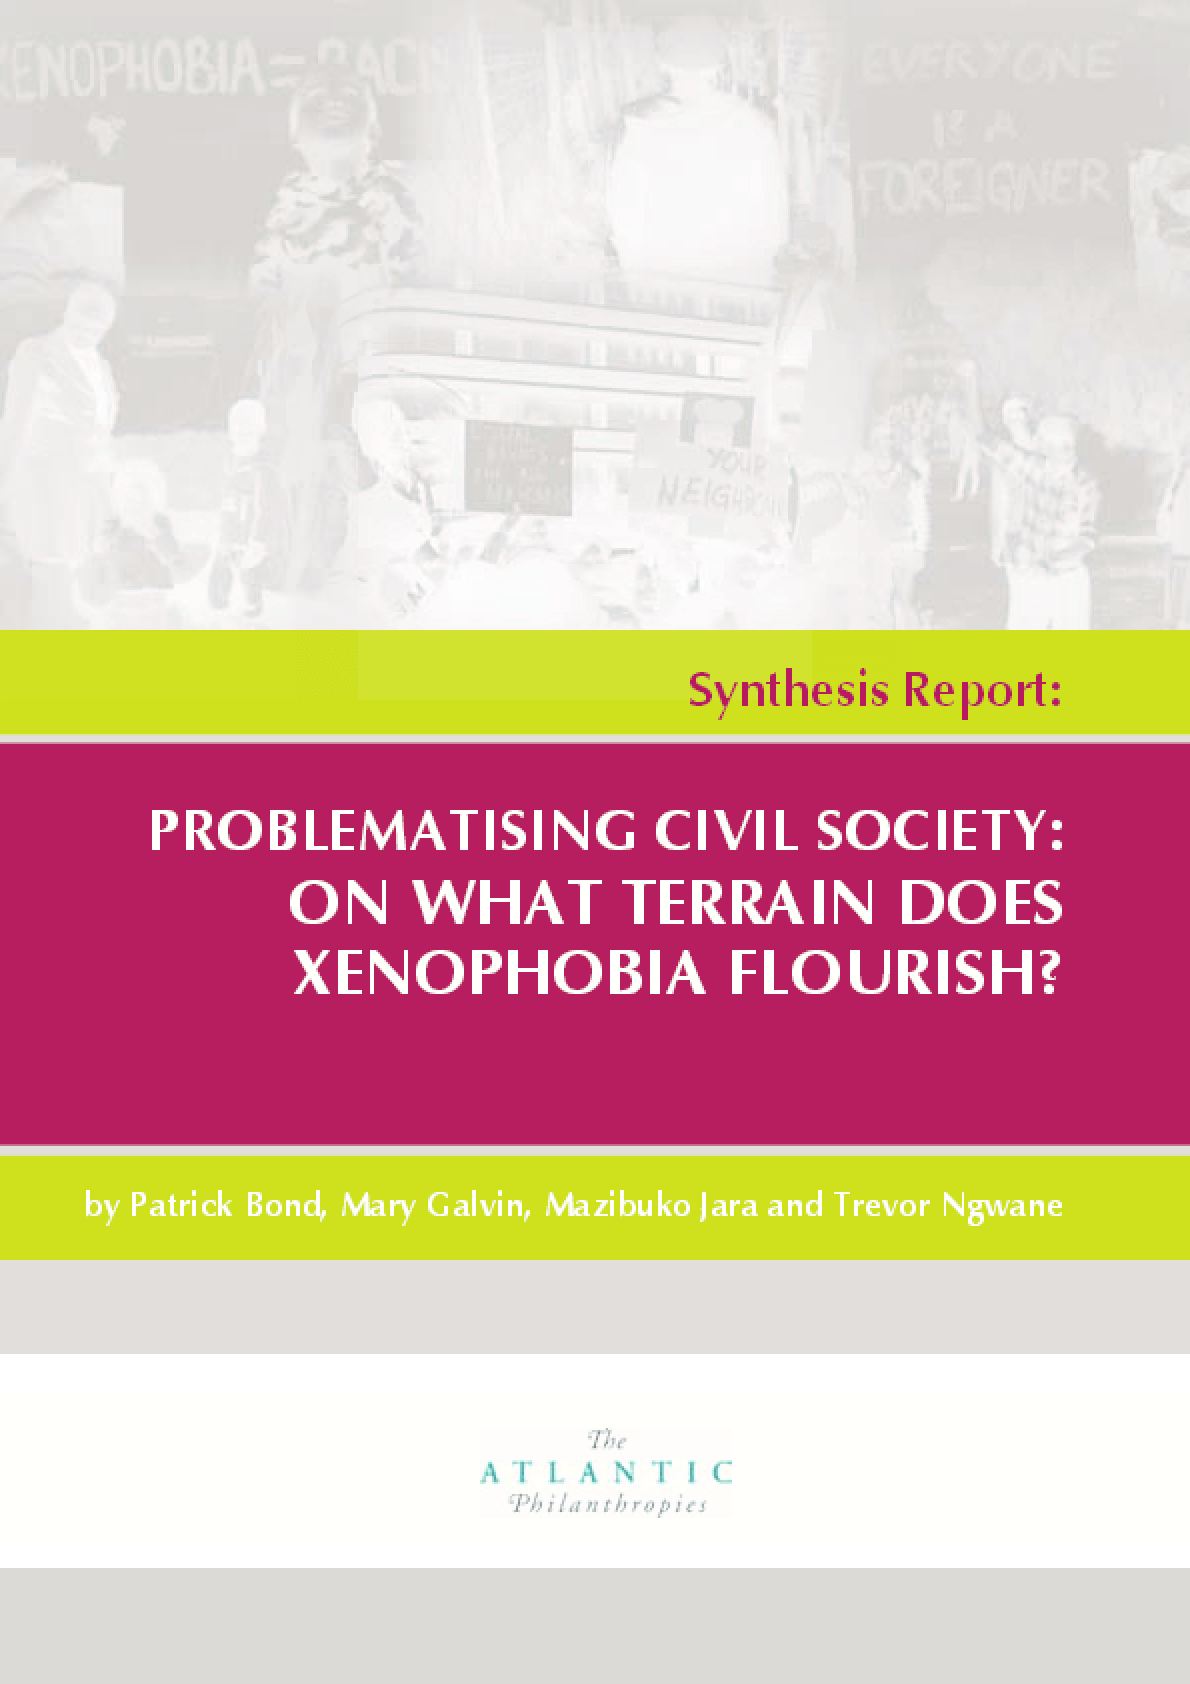 Problematising Civil Society- on What Terrain Does Xenophobia Flourish